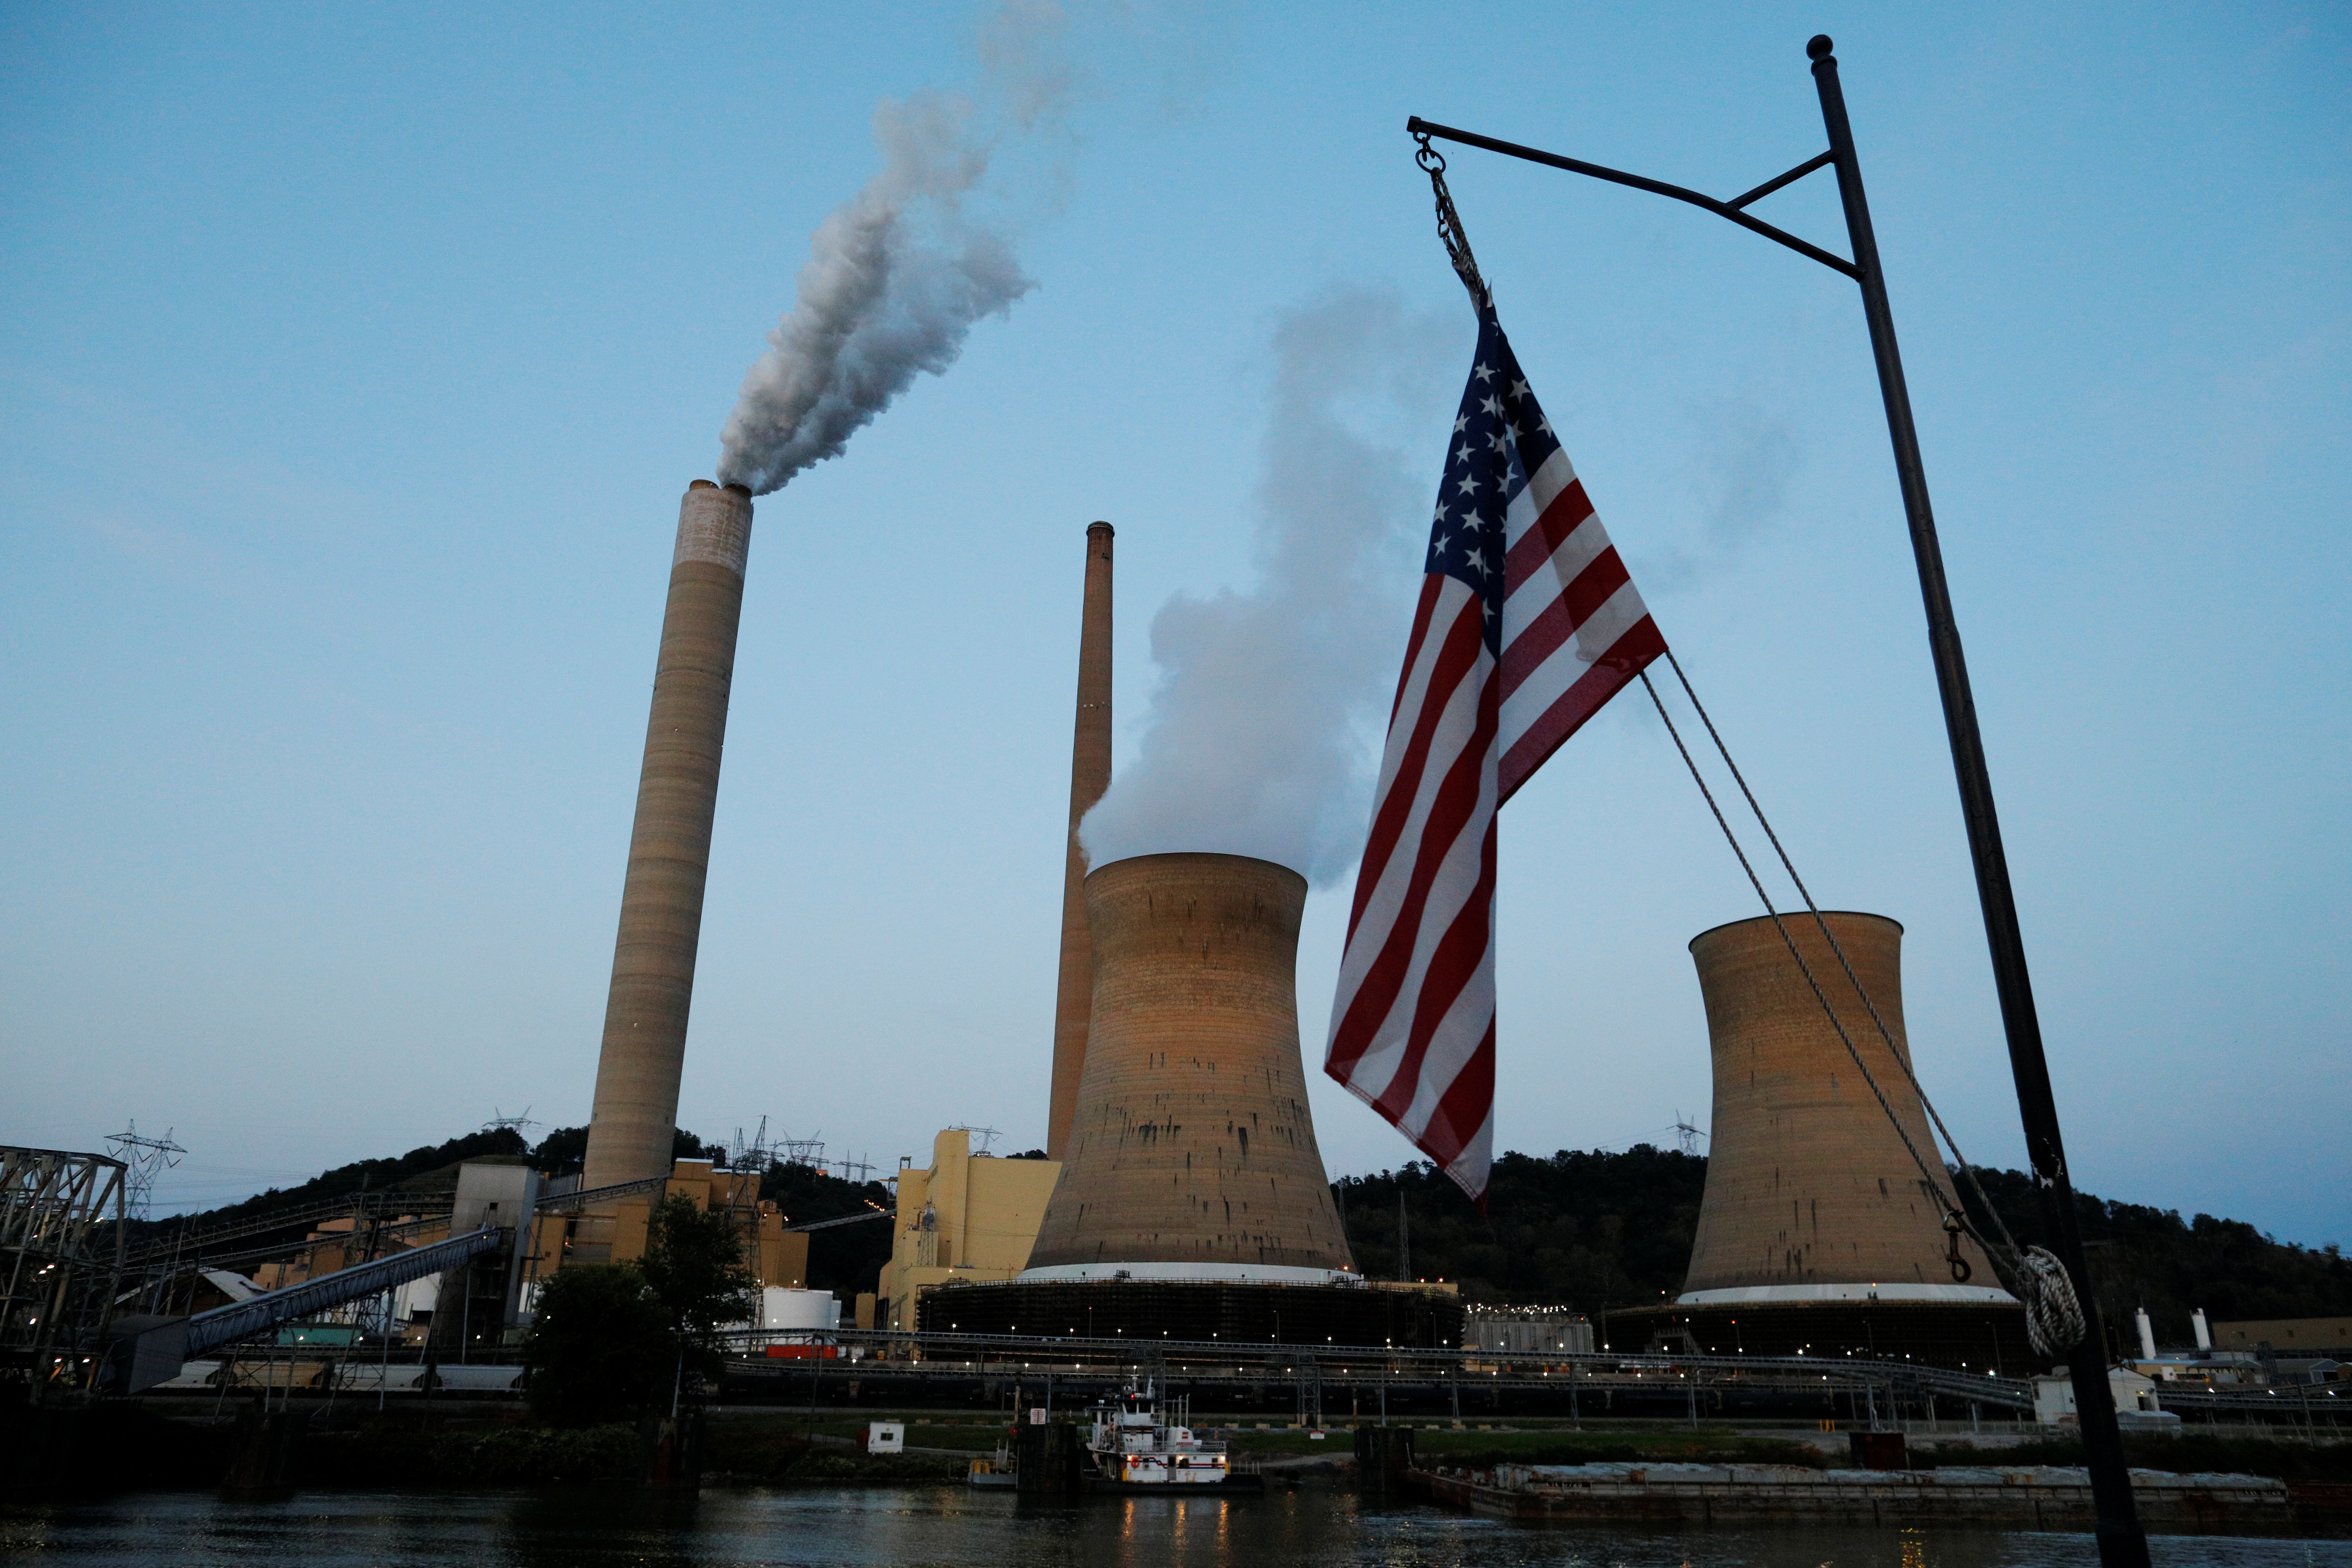 The U.S. flag flies on Campbell Transportation's towboat M.K. McNally as it passes Mitchell Power Plant on the Ohio River in Moundsville